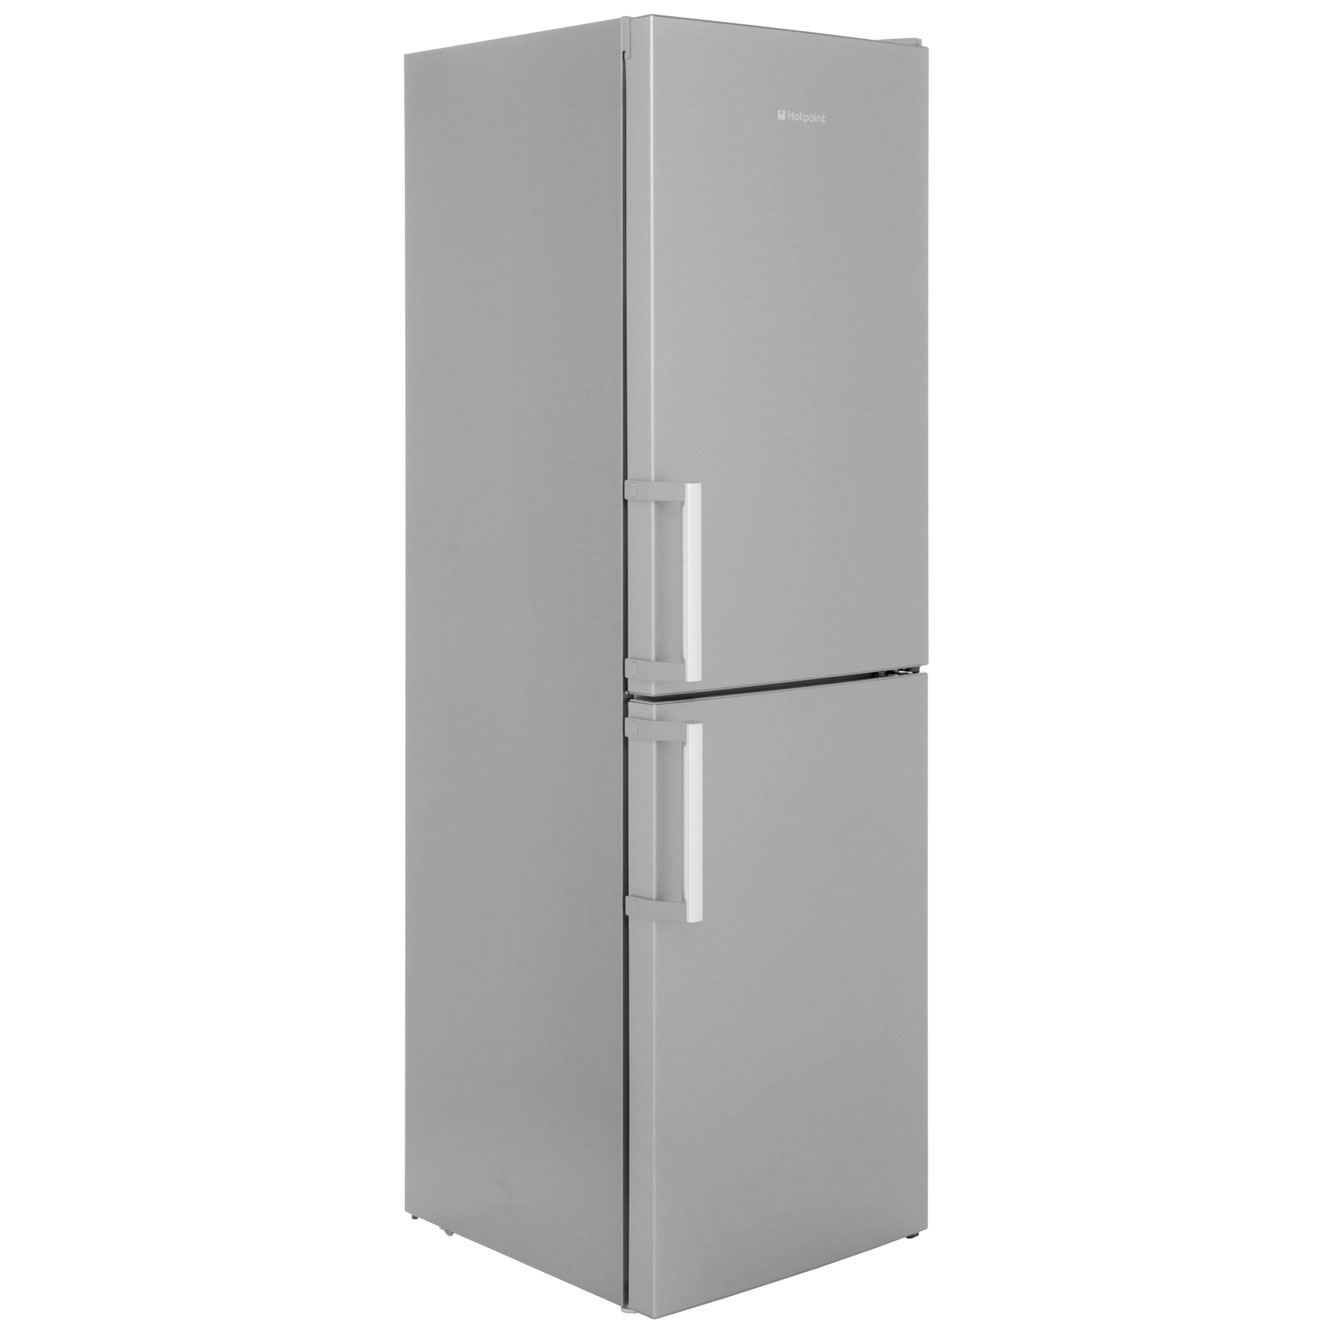 Hotpoint XAO95T2UGOJH Free Standing Fridge Freezer Frost Free in Graphite